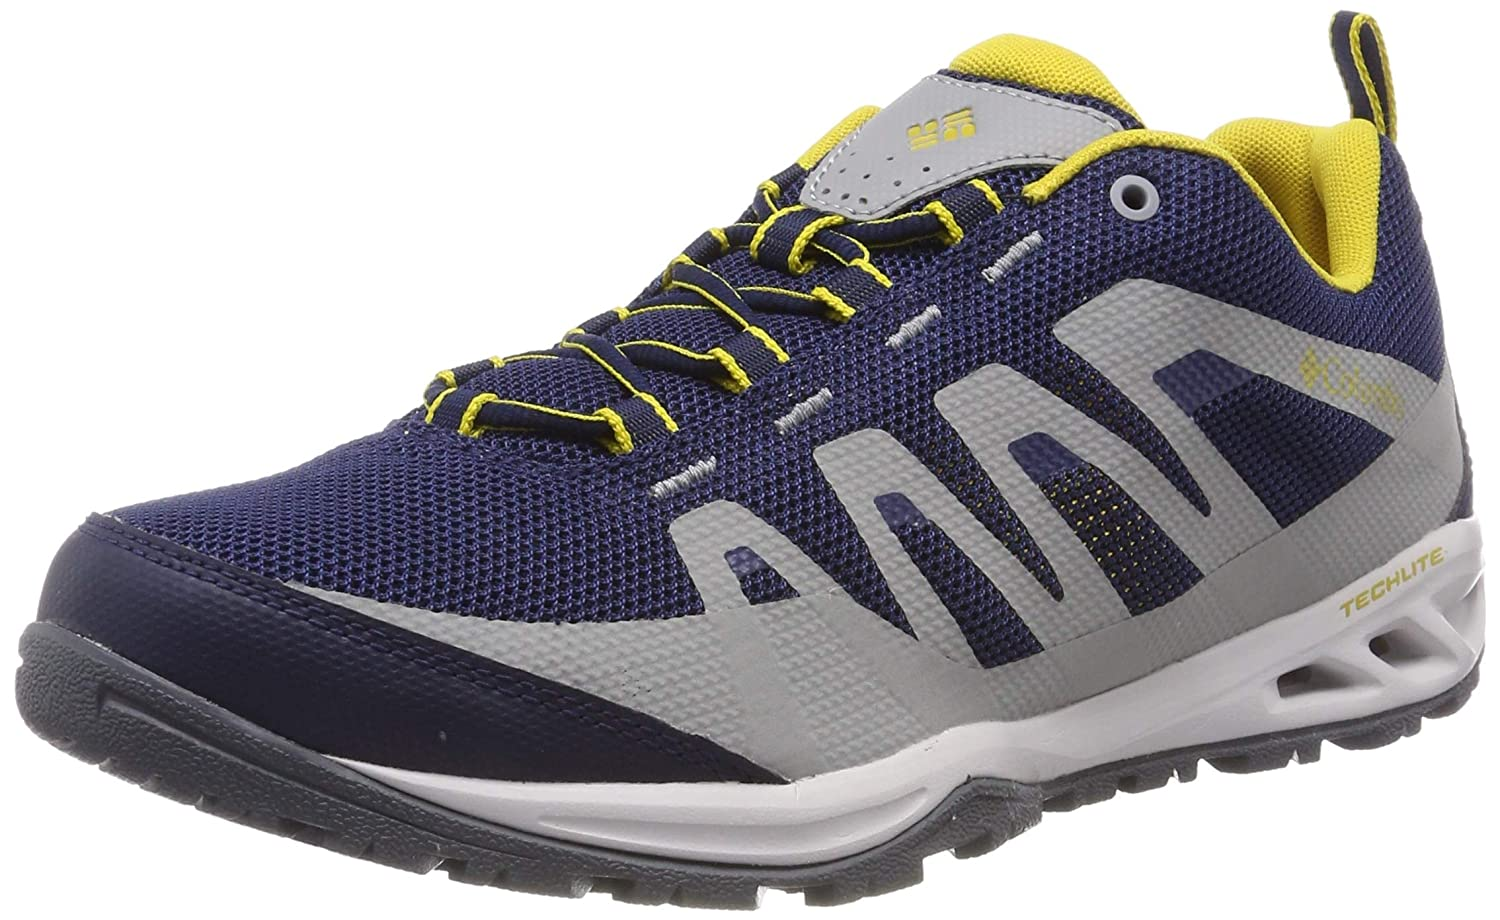 Bleu (Collegiate Navy, Antique Moss) 42 EU Columbia Vapor Vent, Chaussures Multisport de plein air Homme